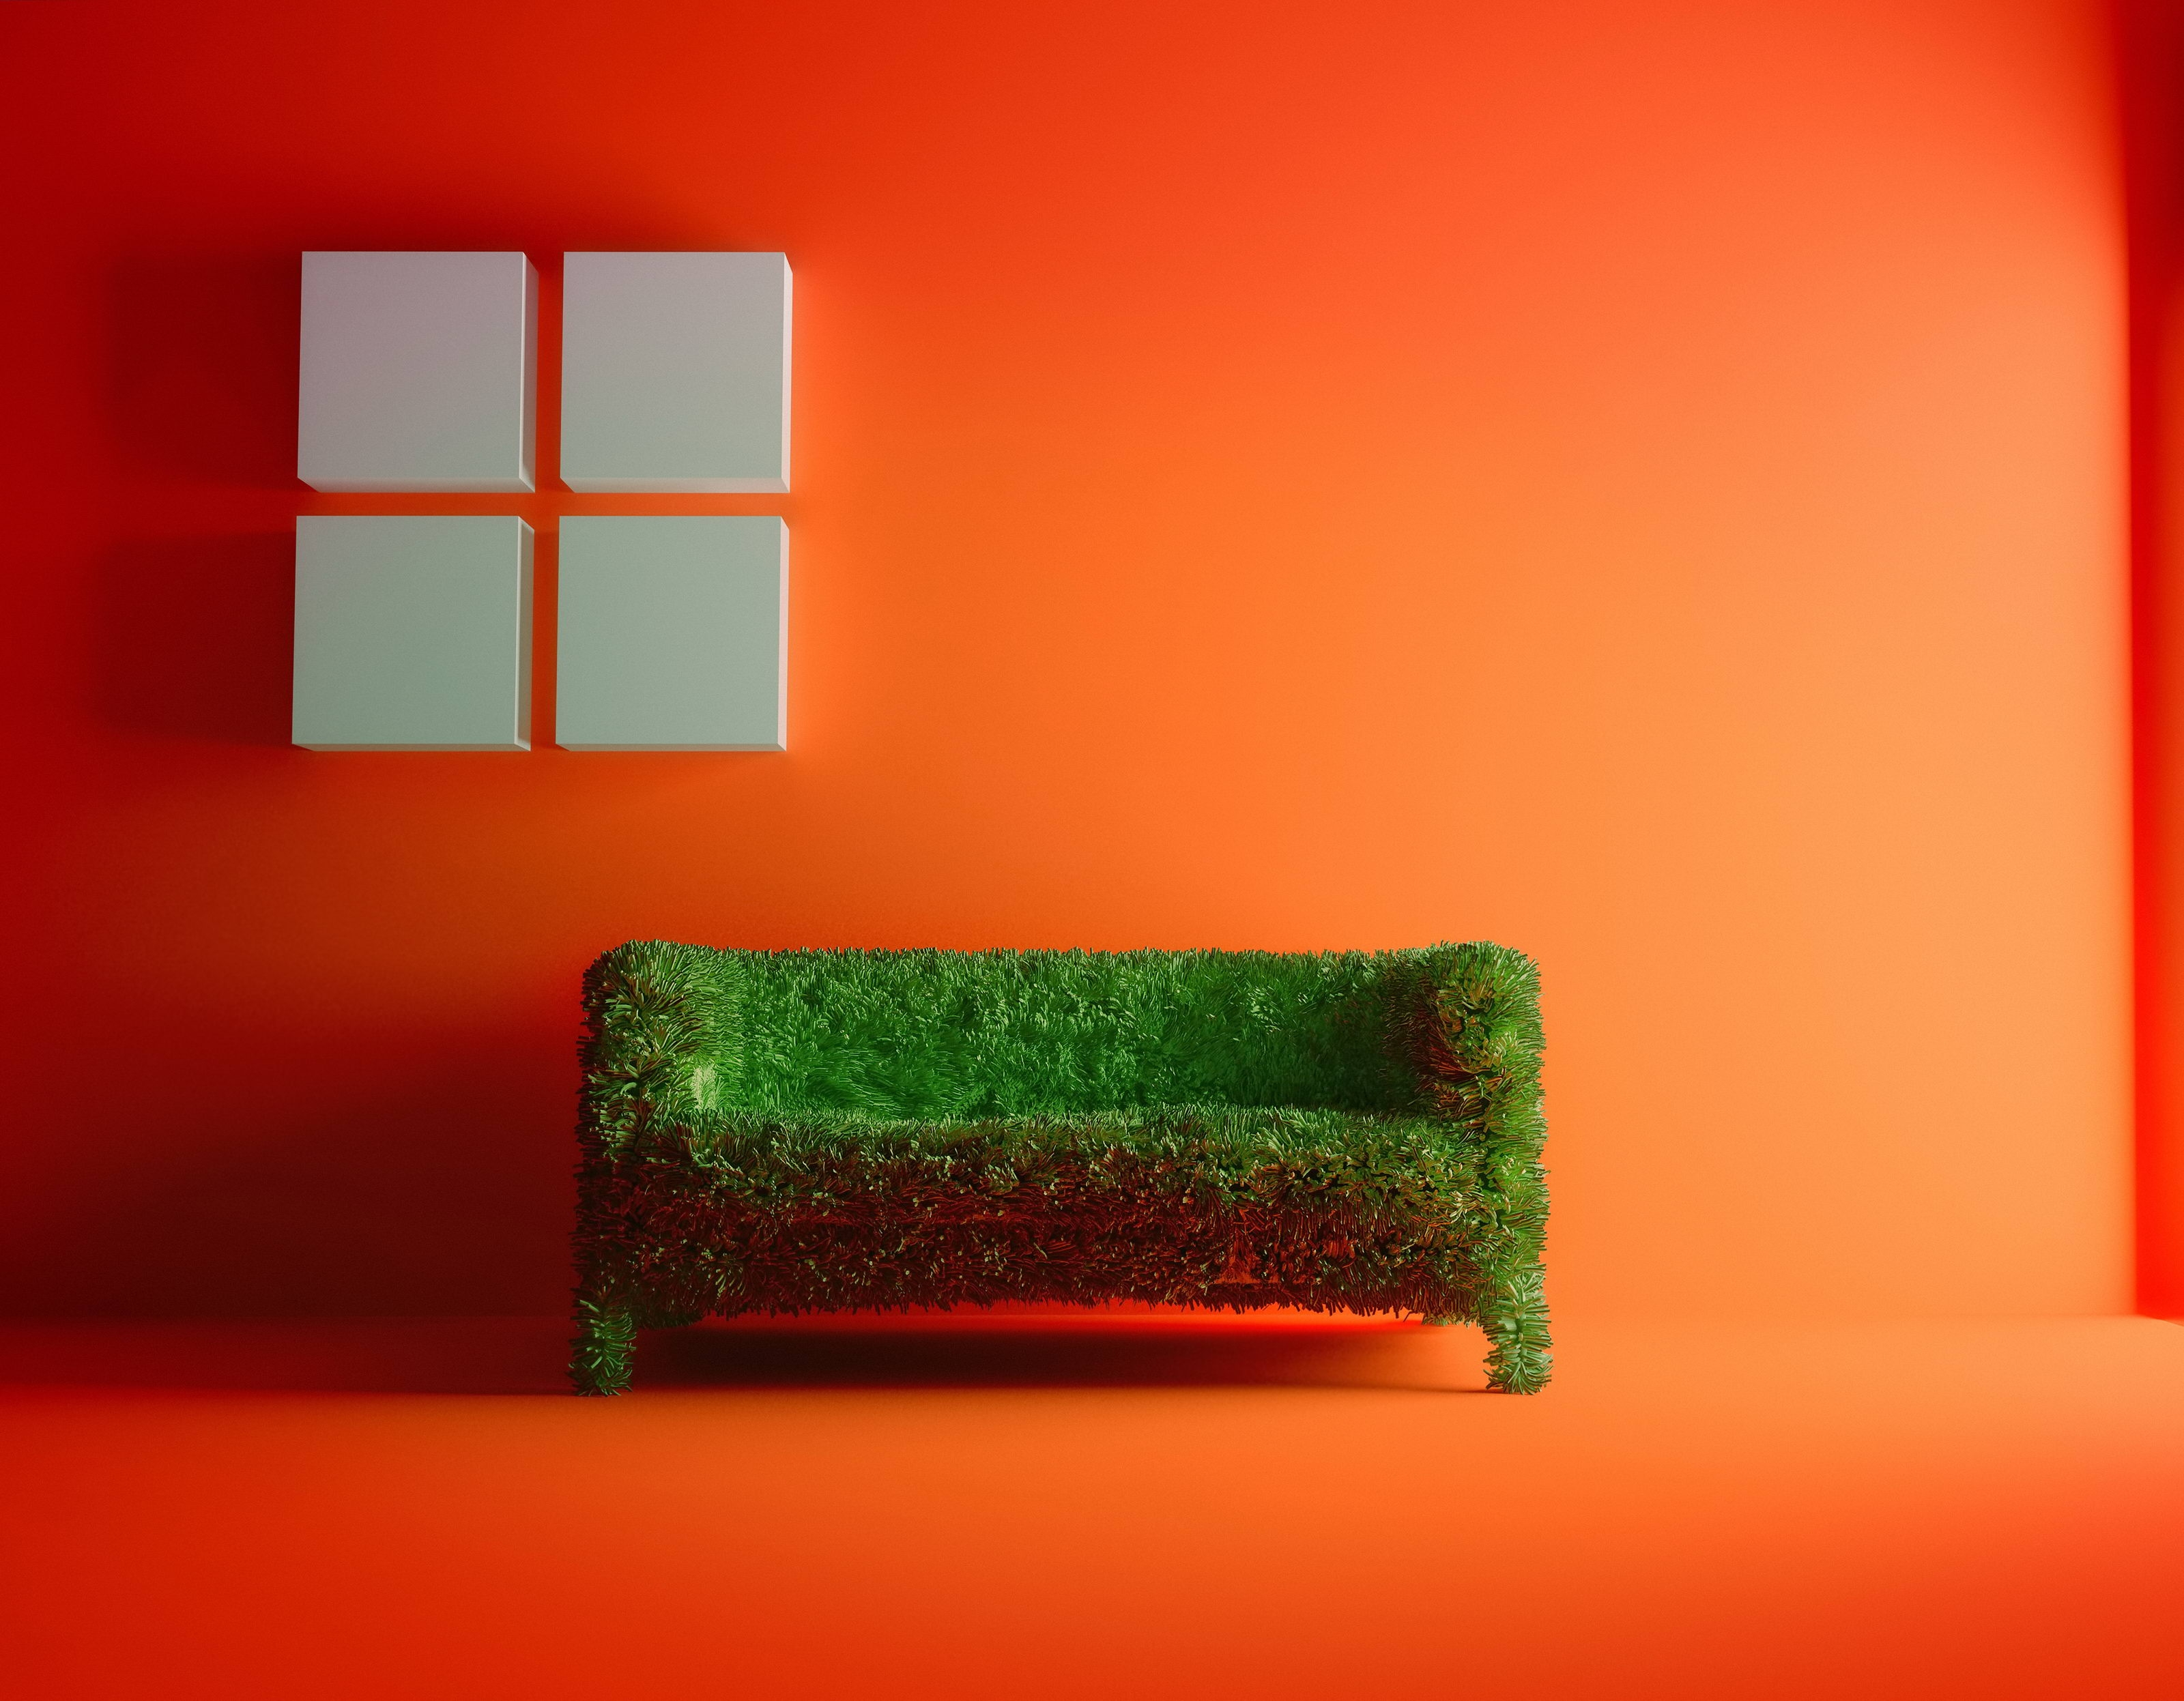 136586 Screensavers and Wallpapers Room for phone. Download Miscellanea, Miscellaneous, Sofa, Grass, Room, Orange Background pictures for free